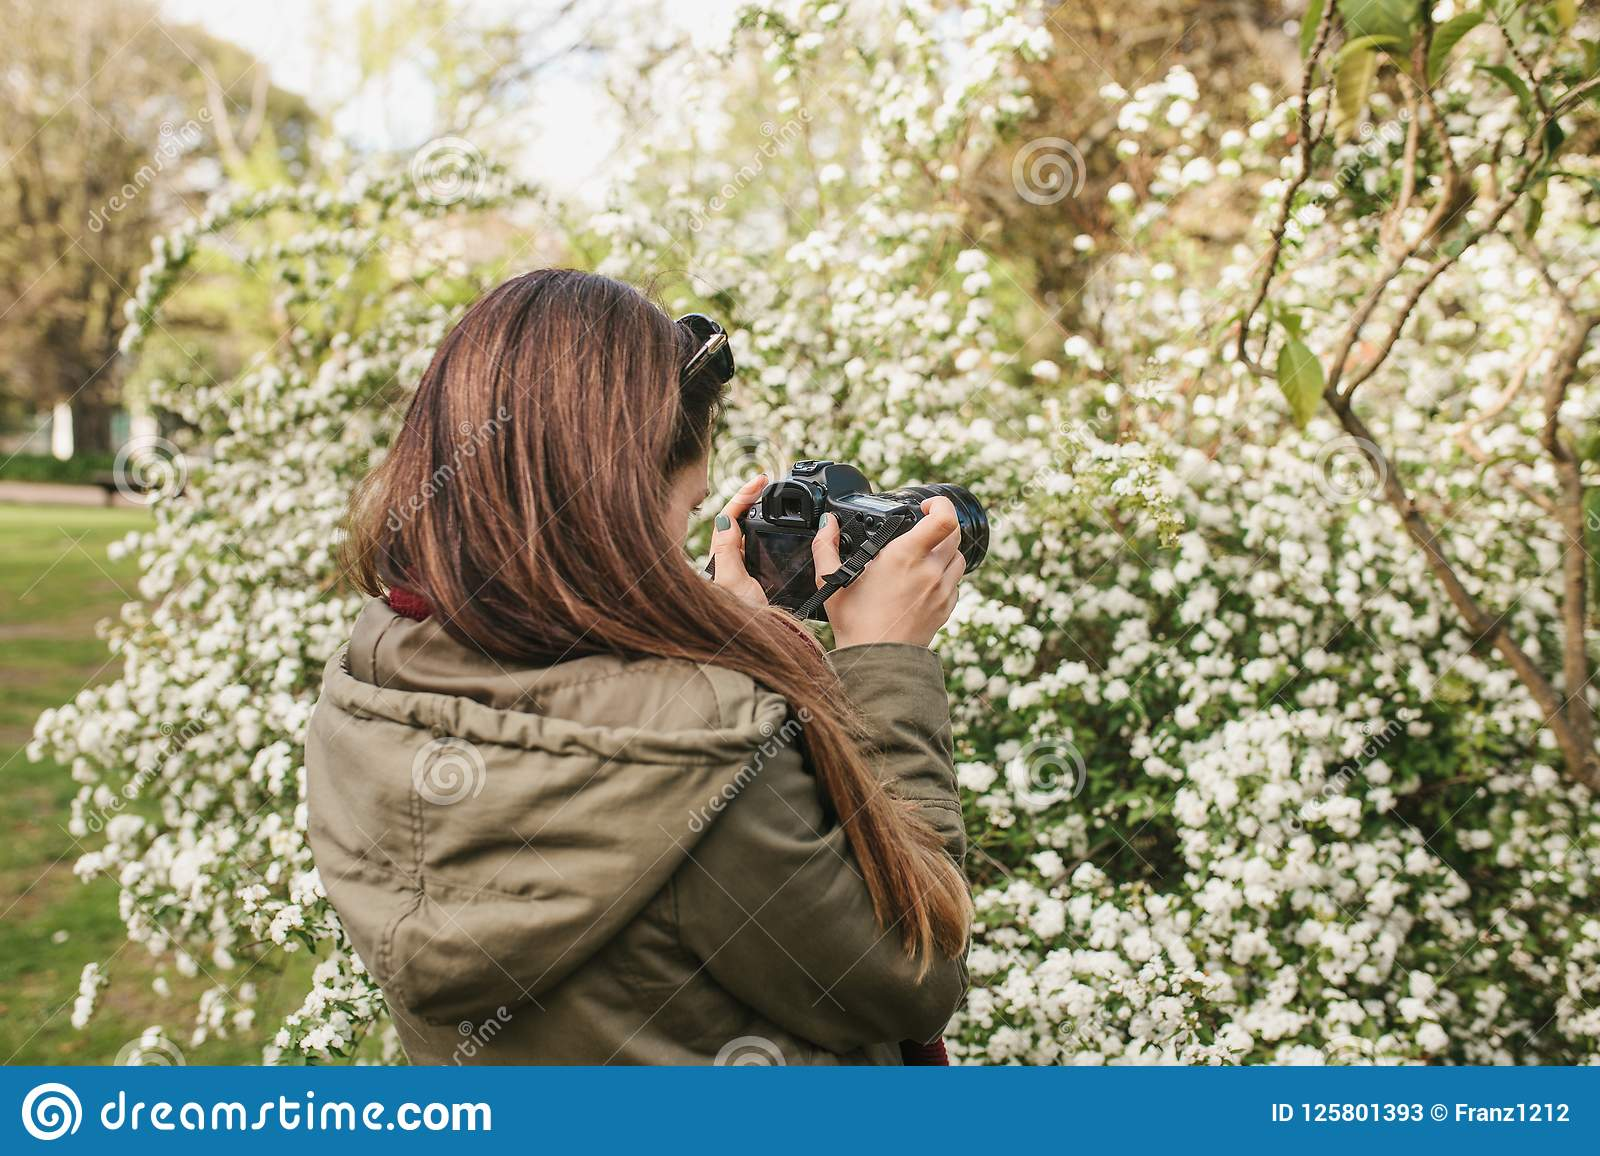 portrait-young-woman-photographer-touris